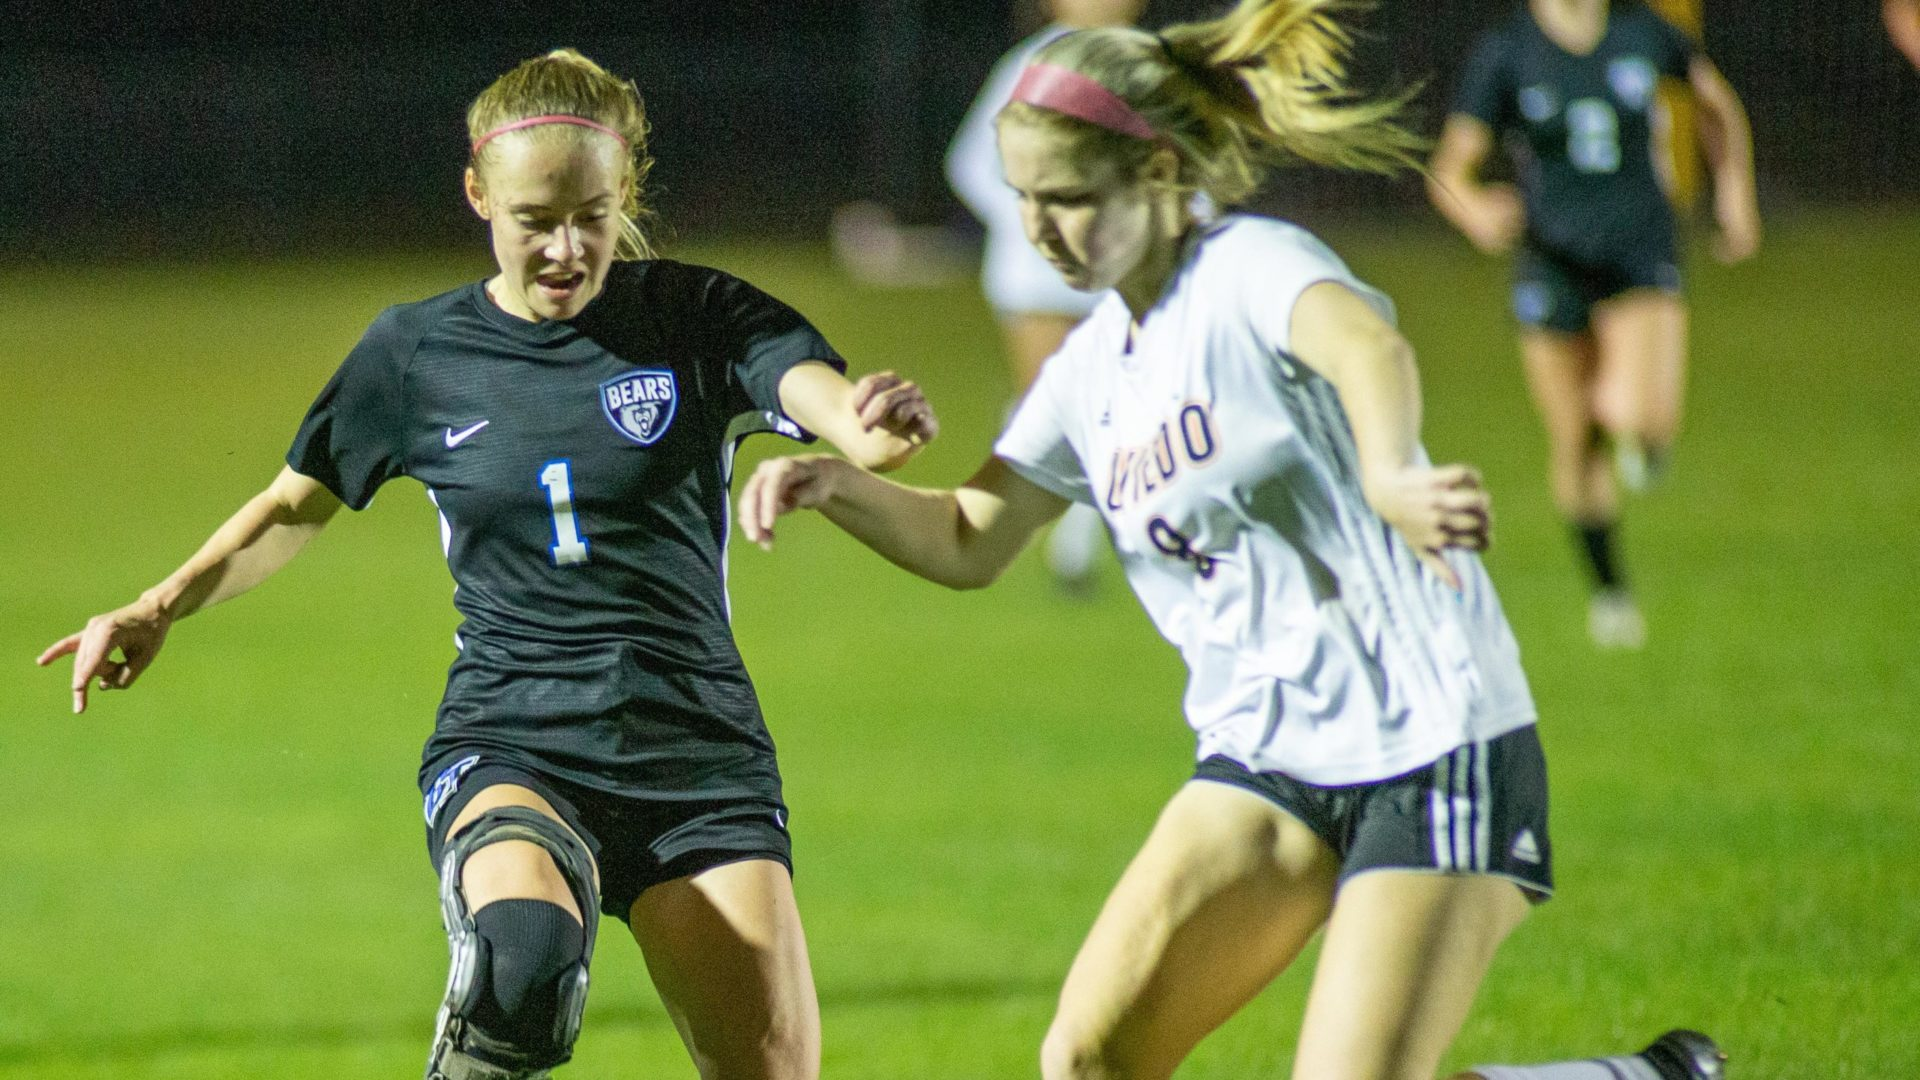 St. Johns Bartram Trail advances to state semifinal